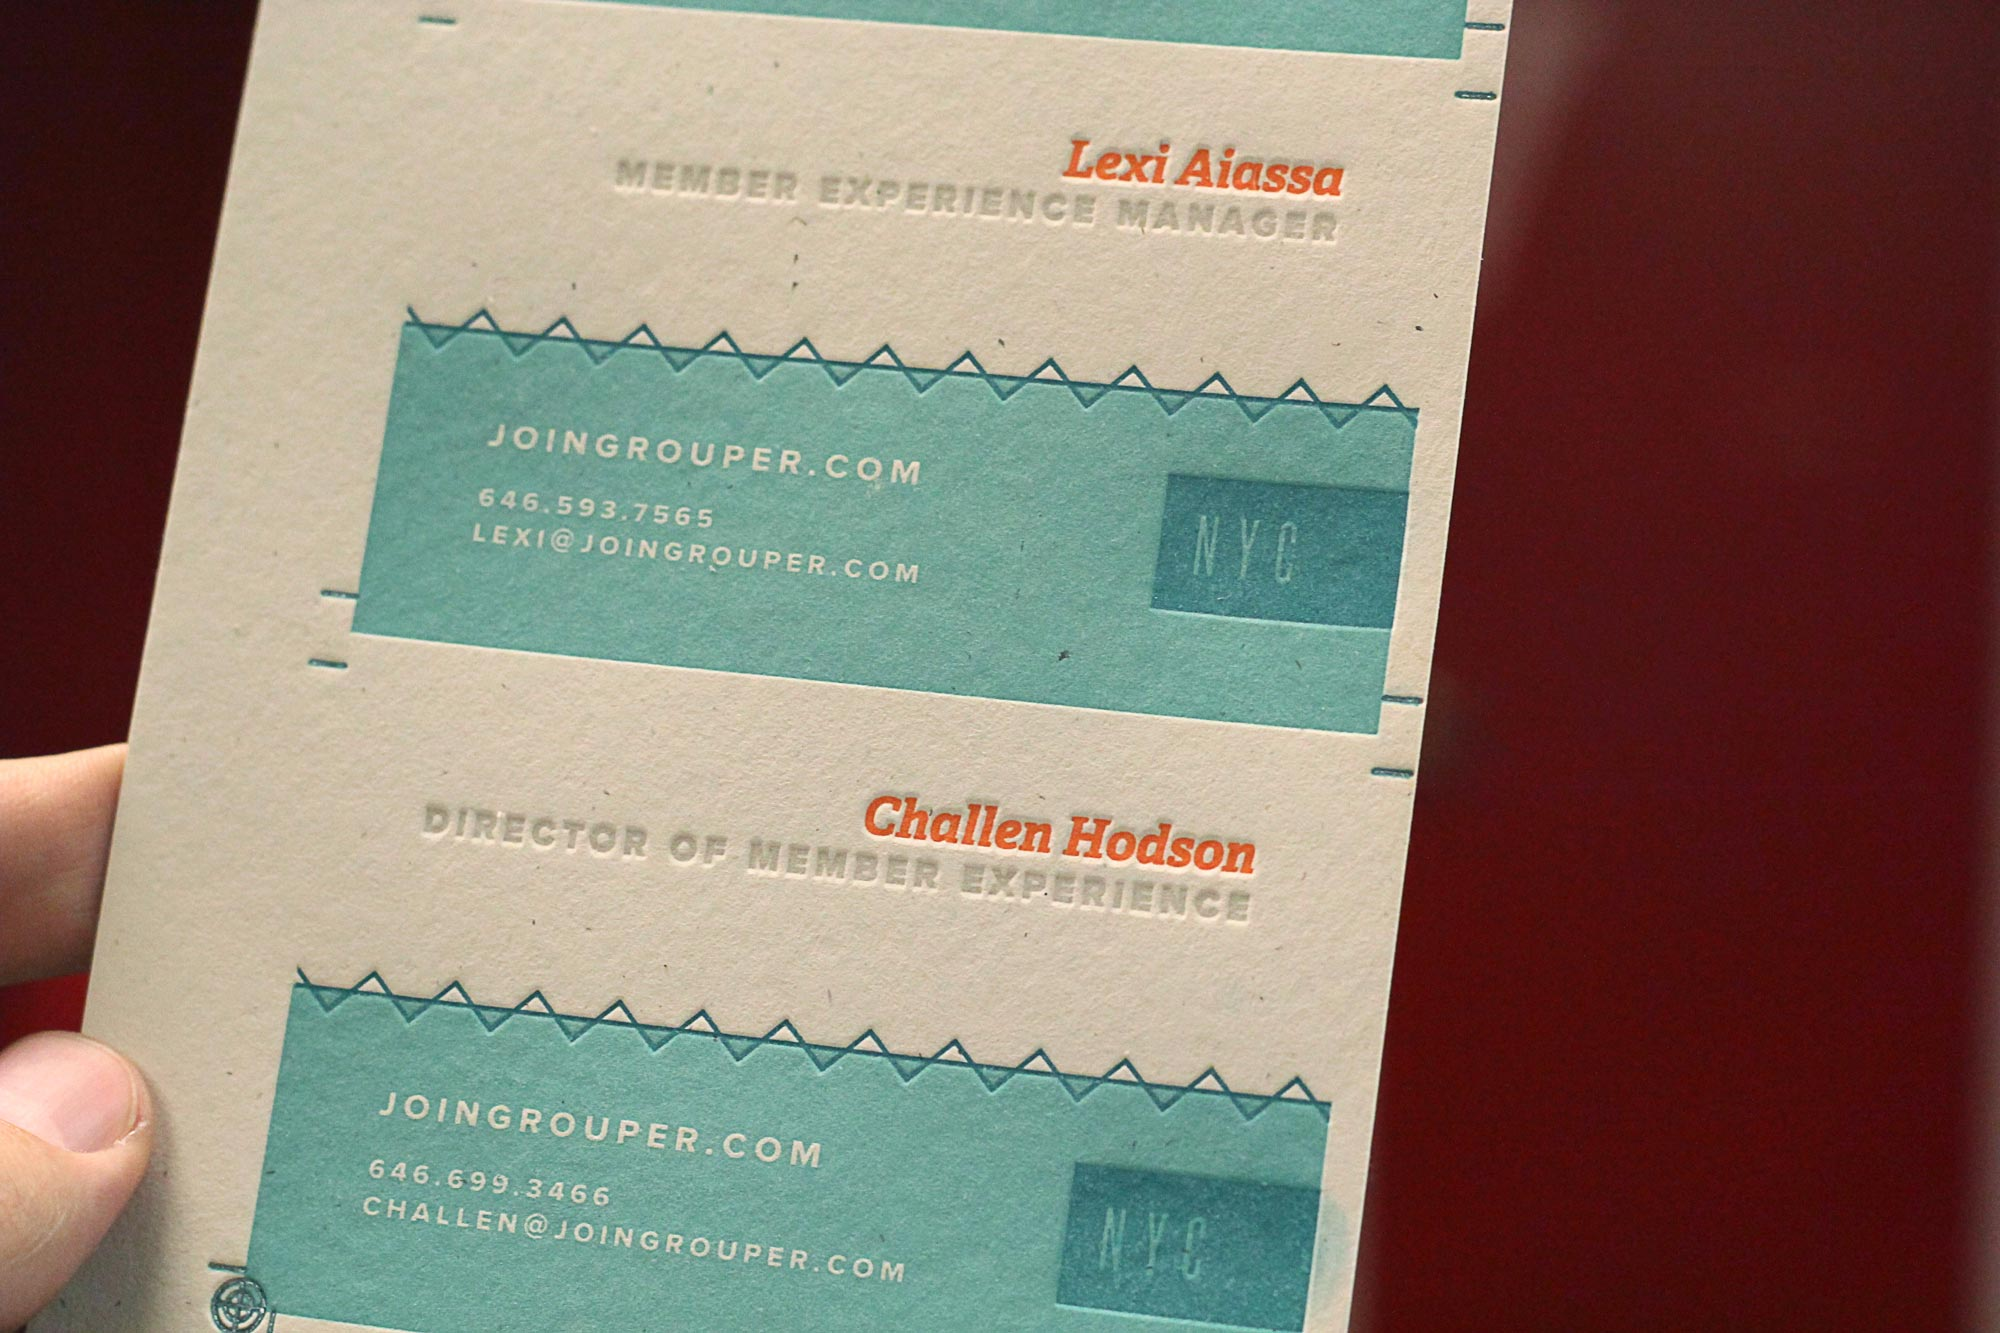 Grouper business cards by Mama's Sauce